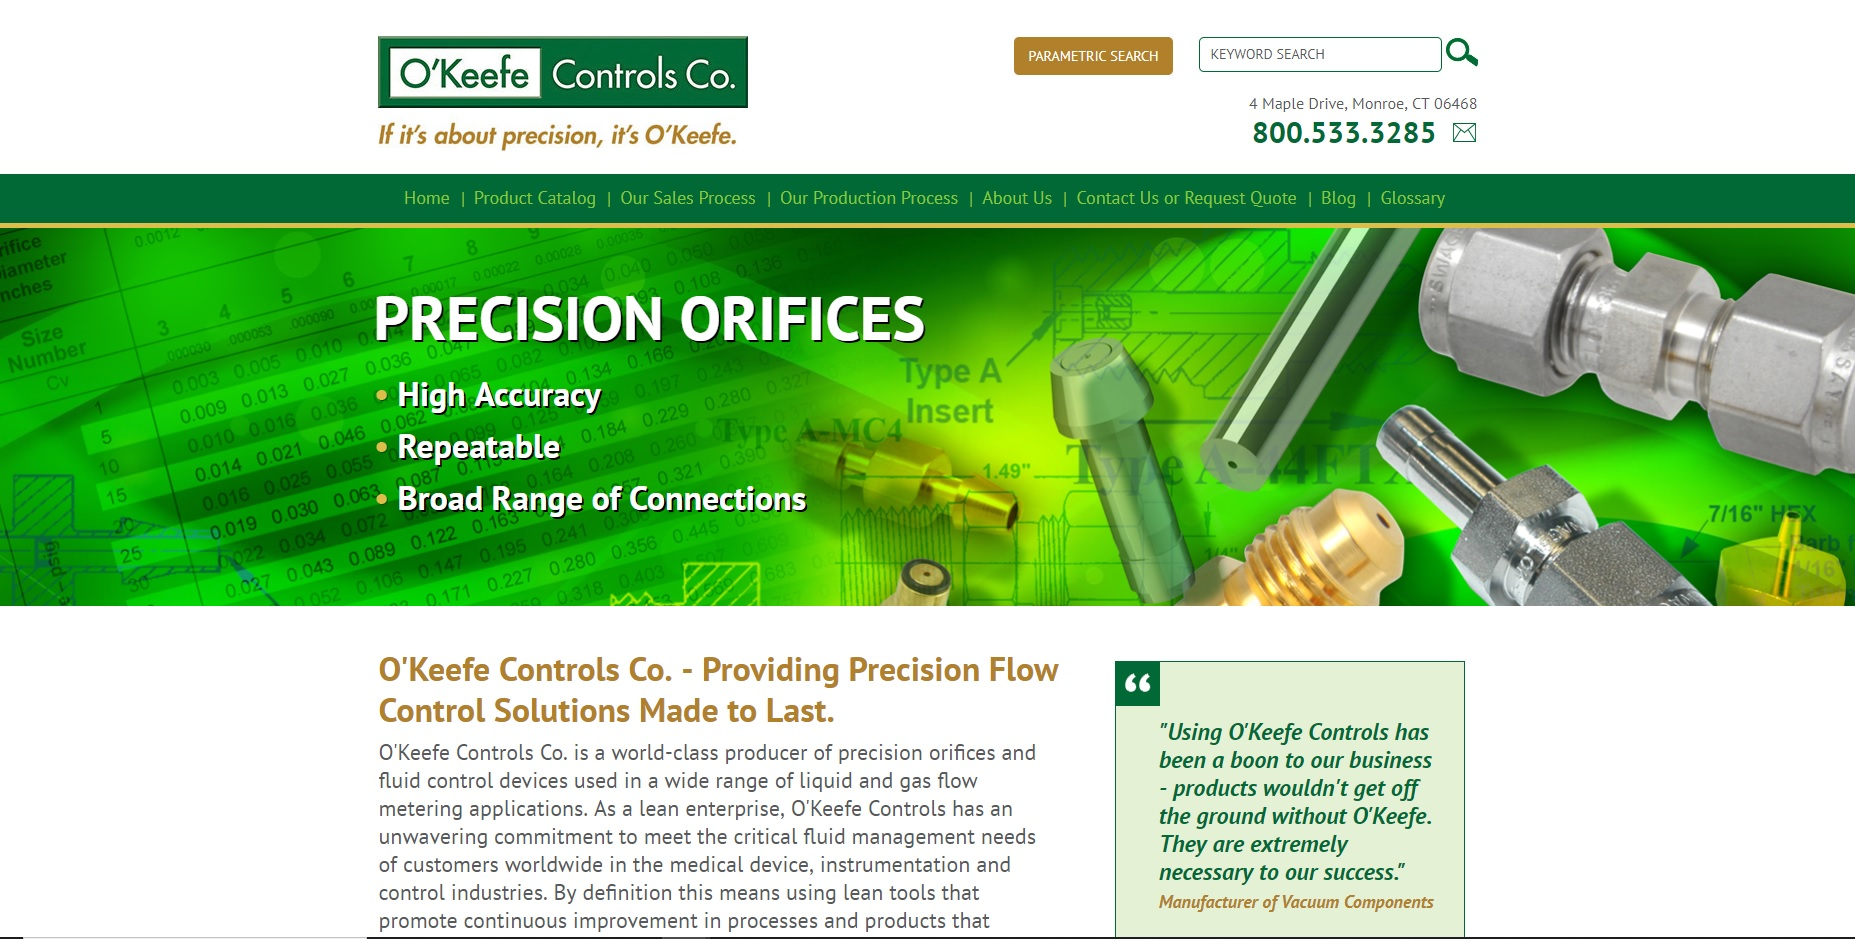 O'Keefe Controls Co.